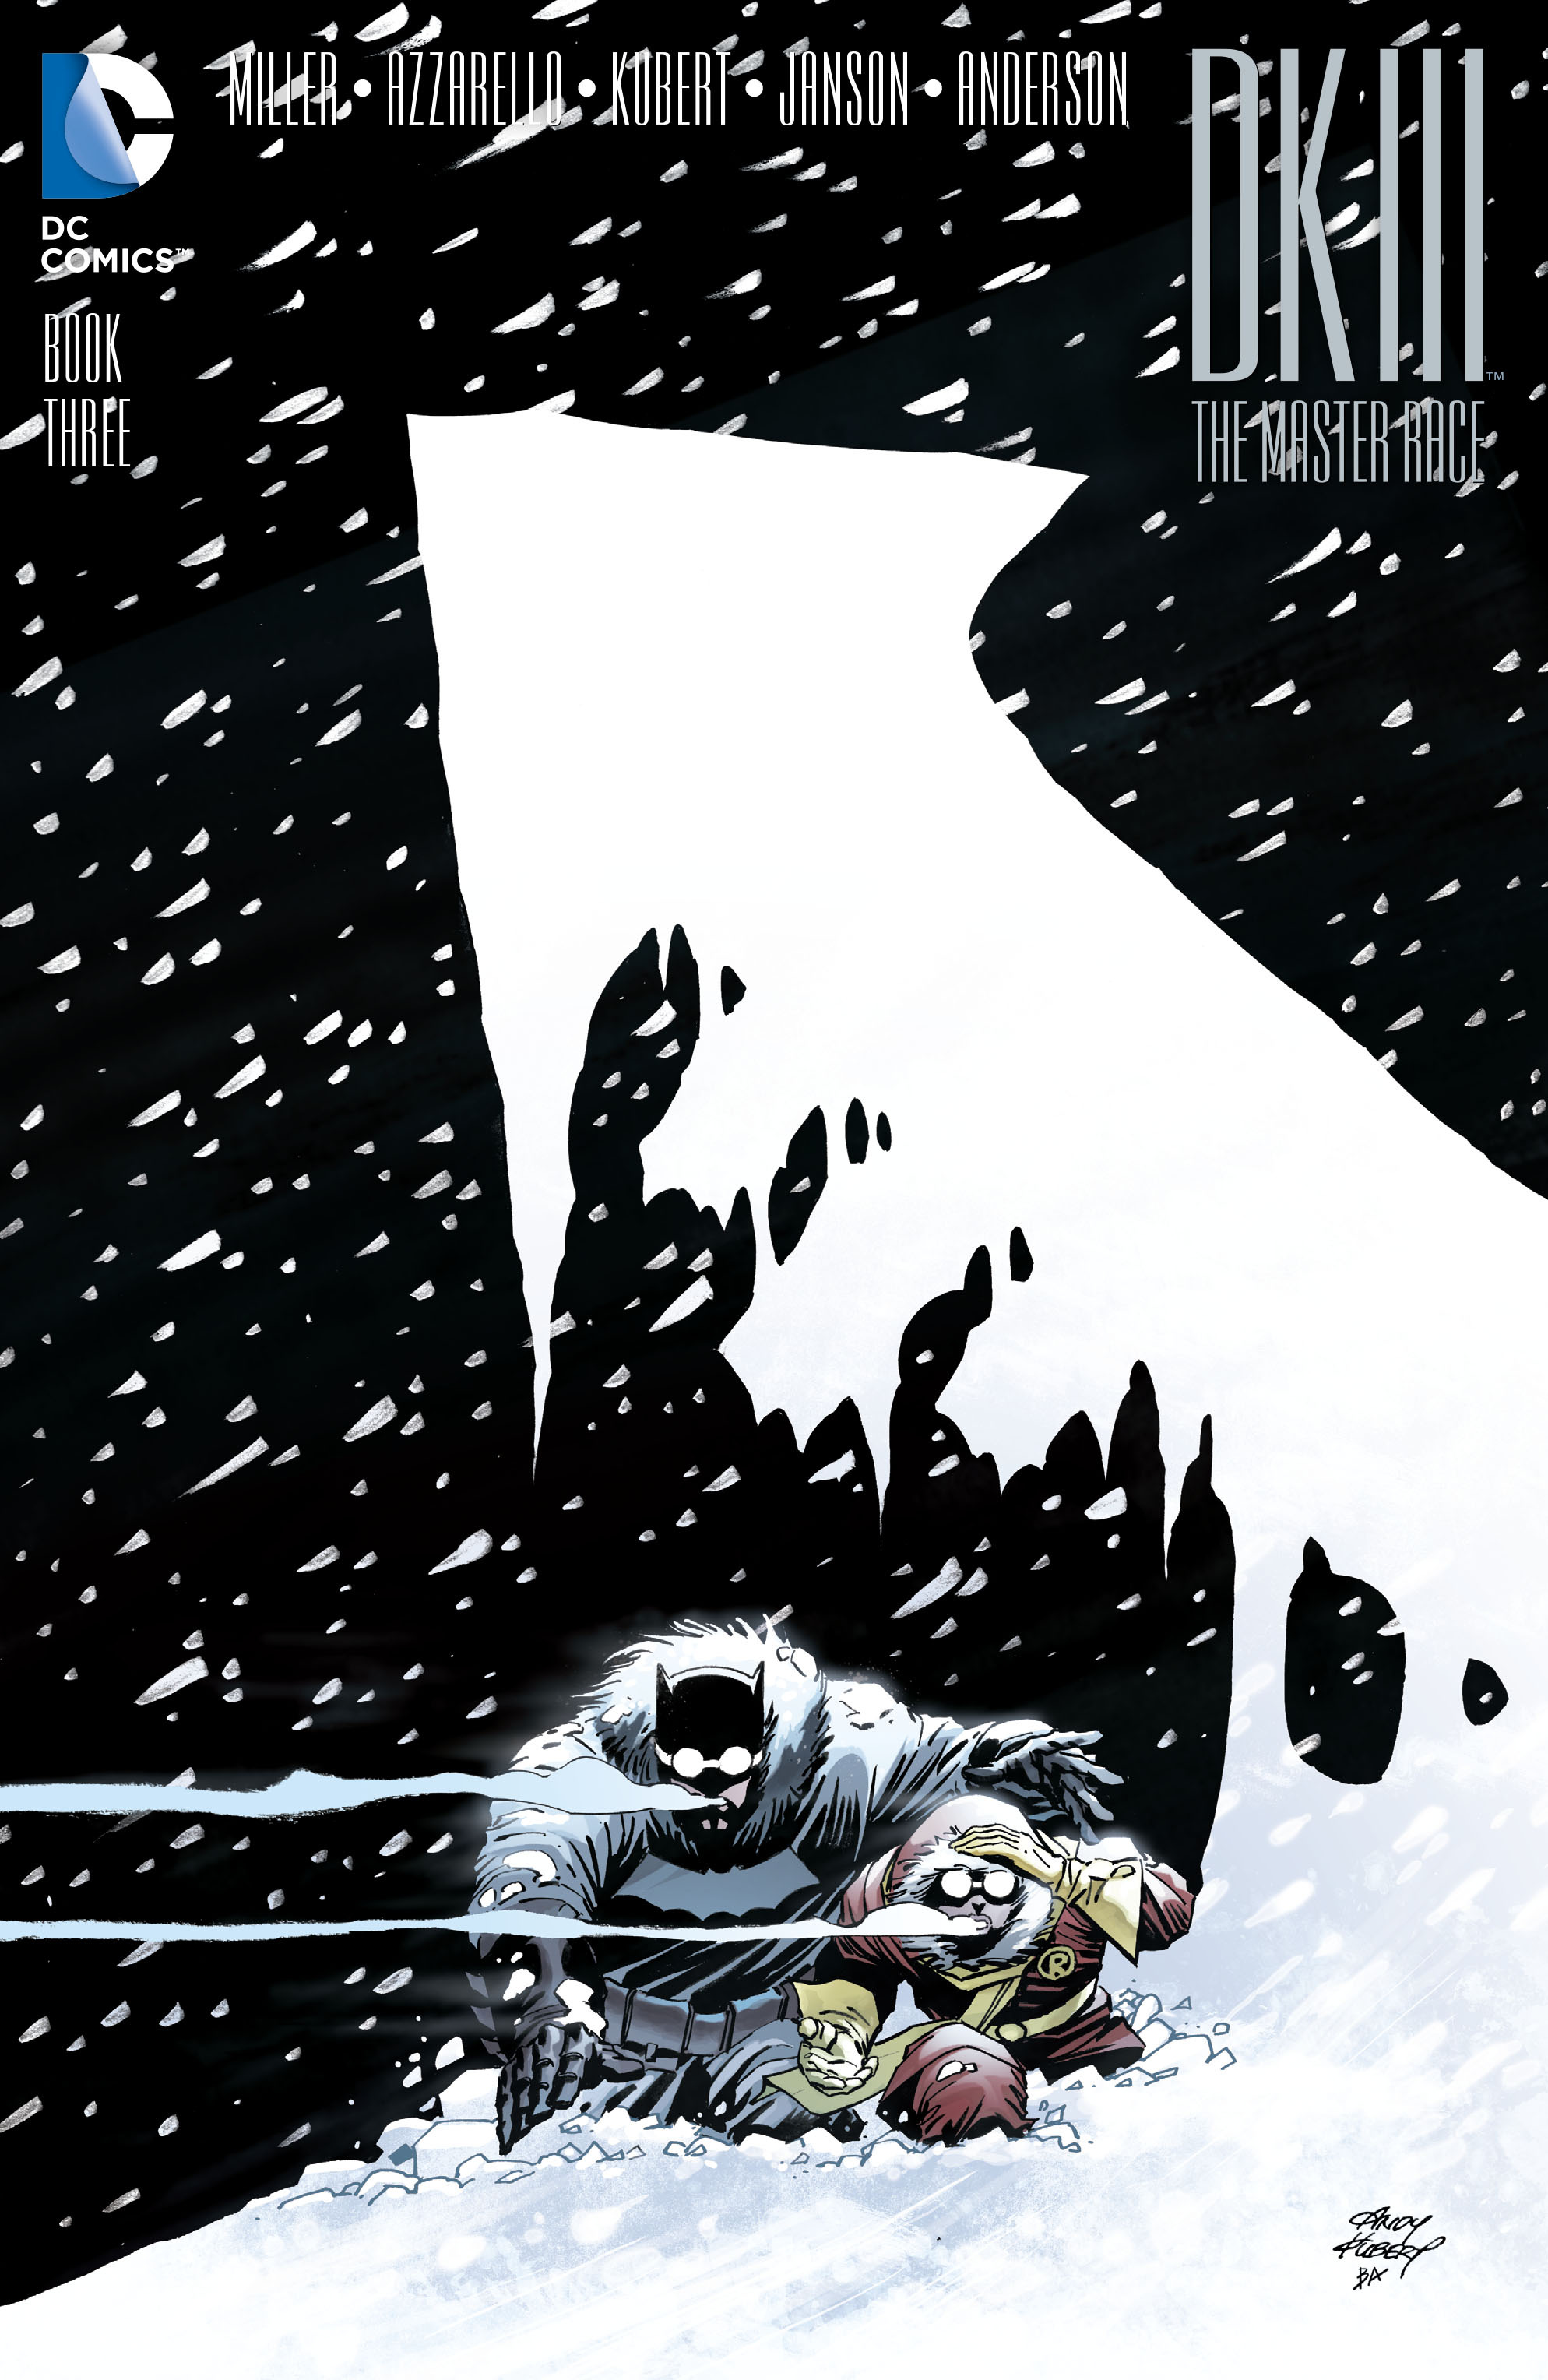 Dark Knight III - The Master Race 3 - cover